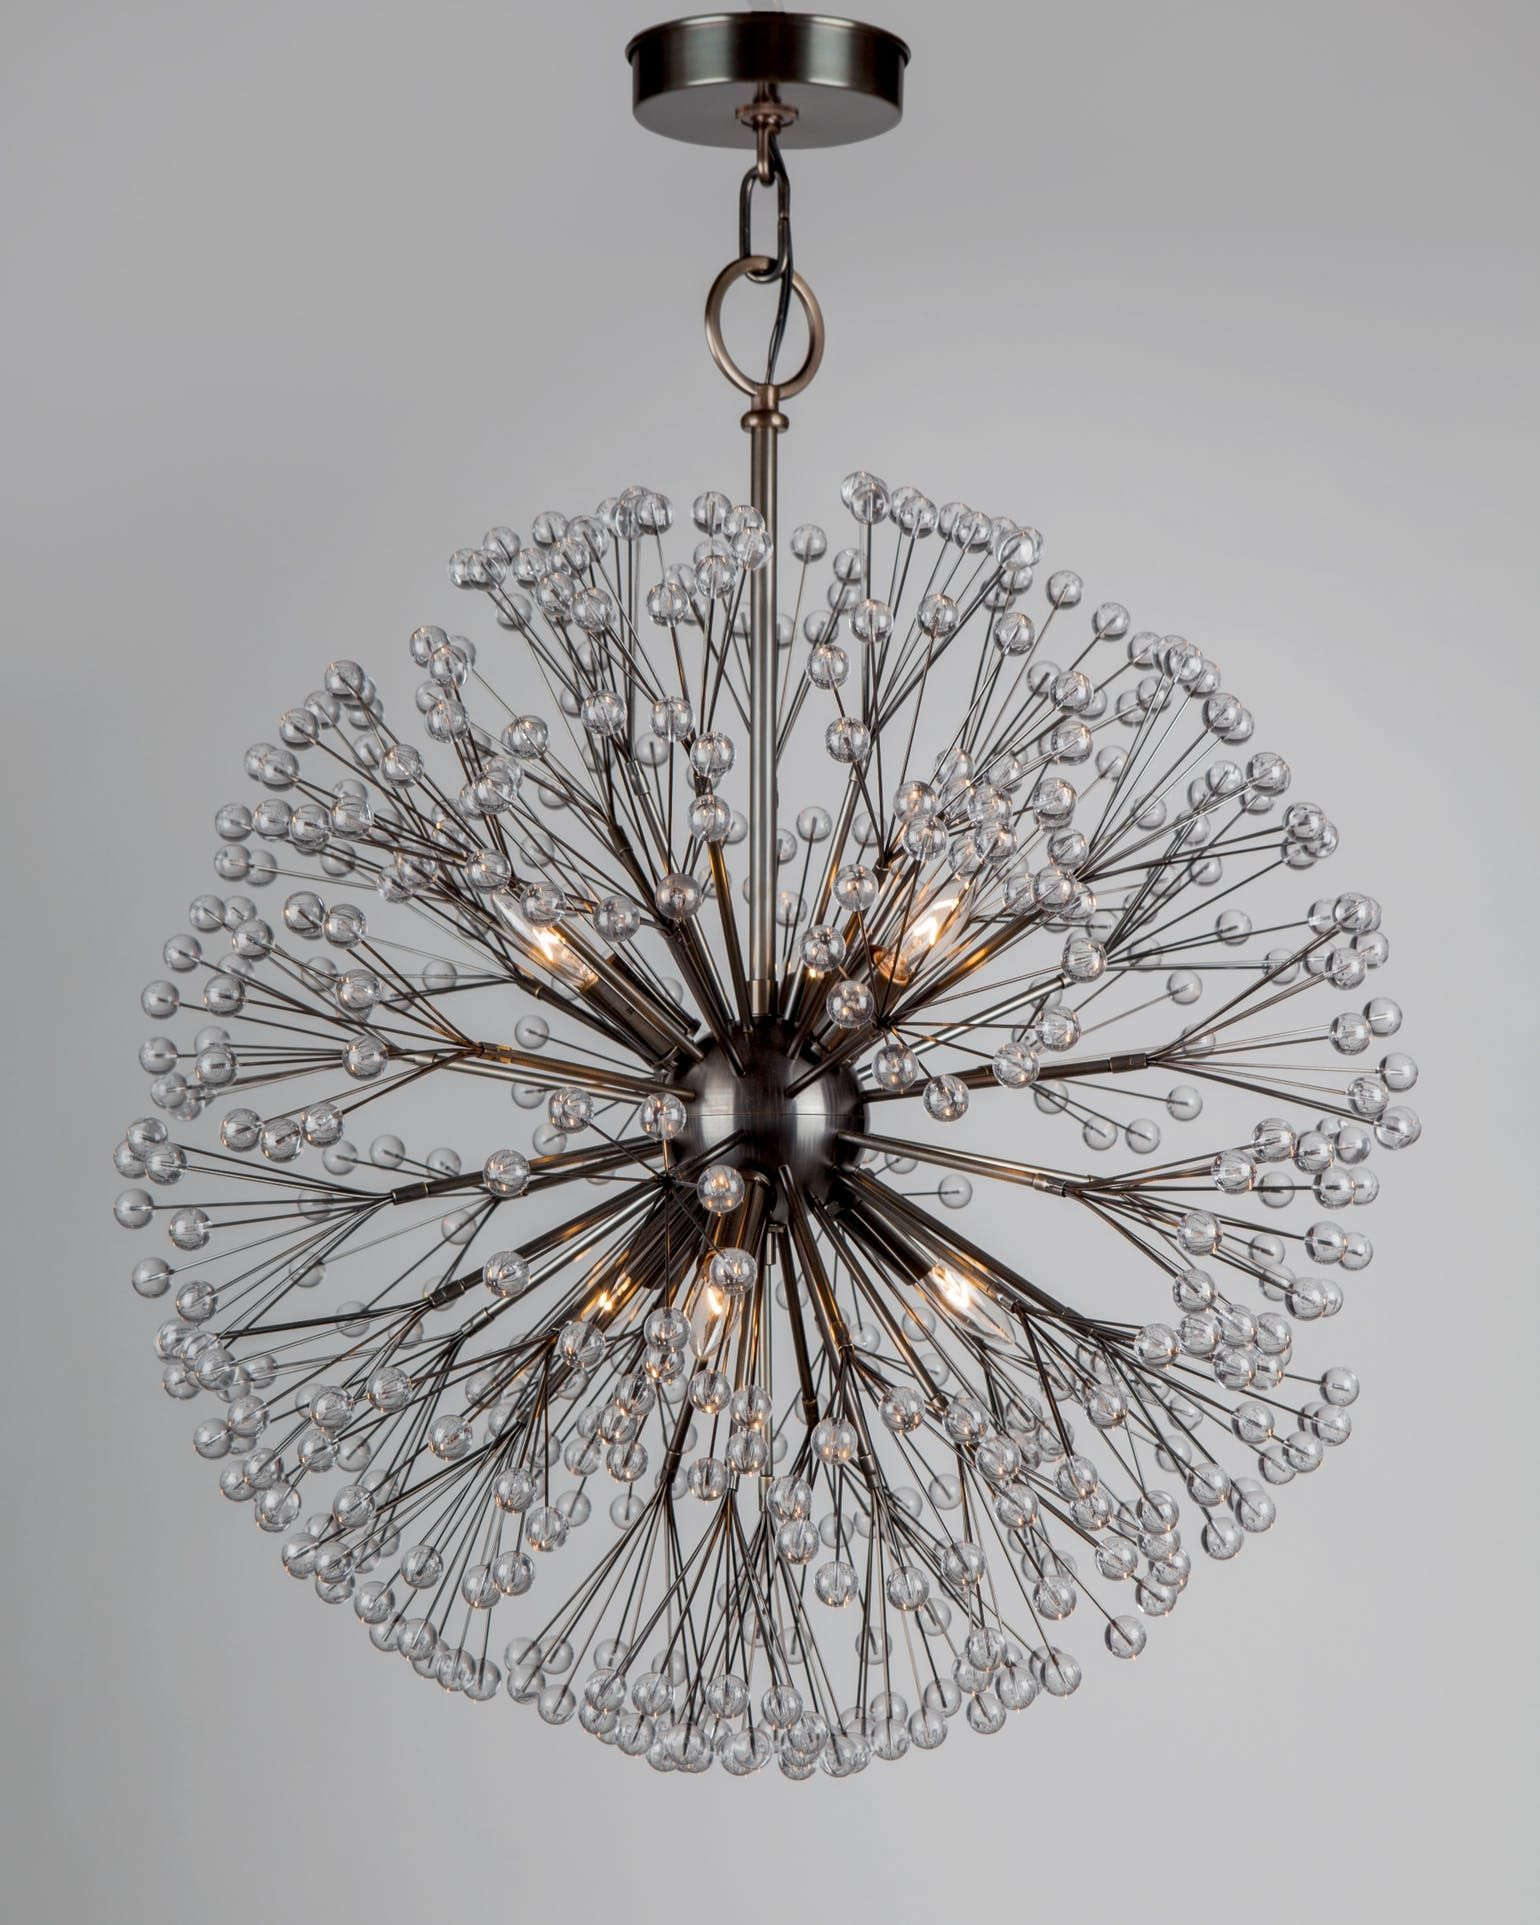 Dandelion Chandelier By Remains Lighting Made To Order Designer From Dering Hall S Collection Of Contemporary Mid Century Modern